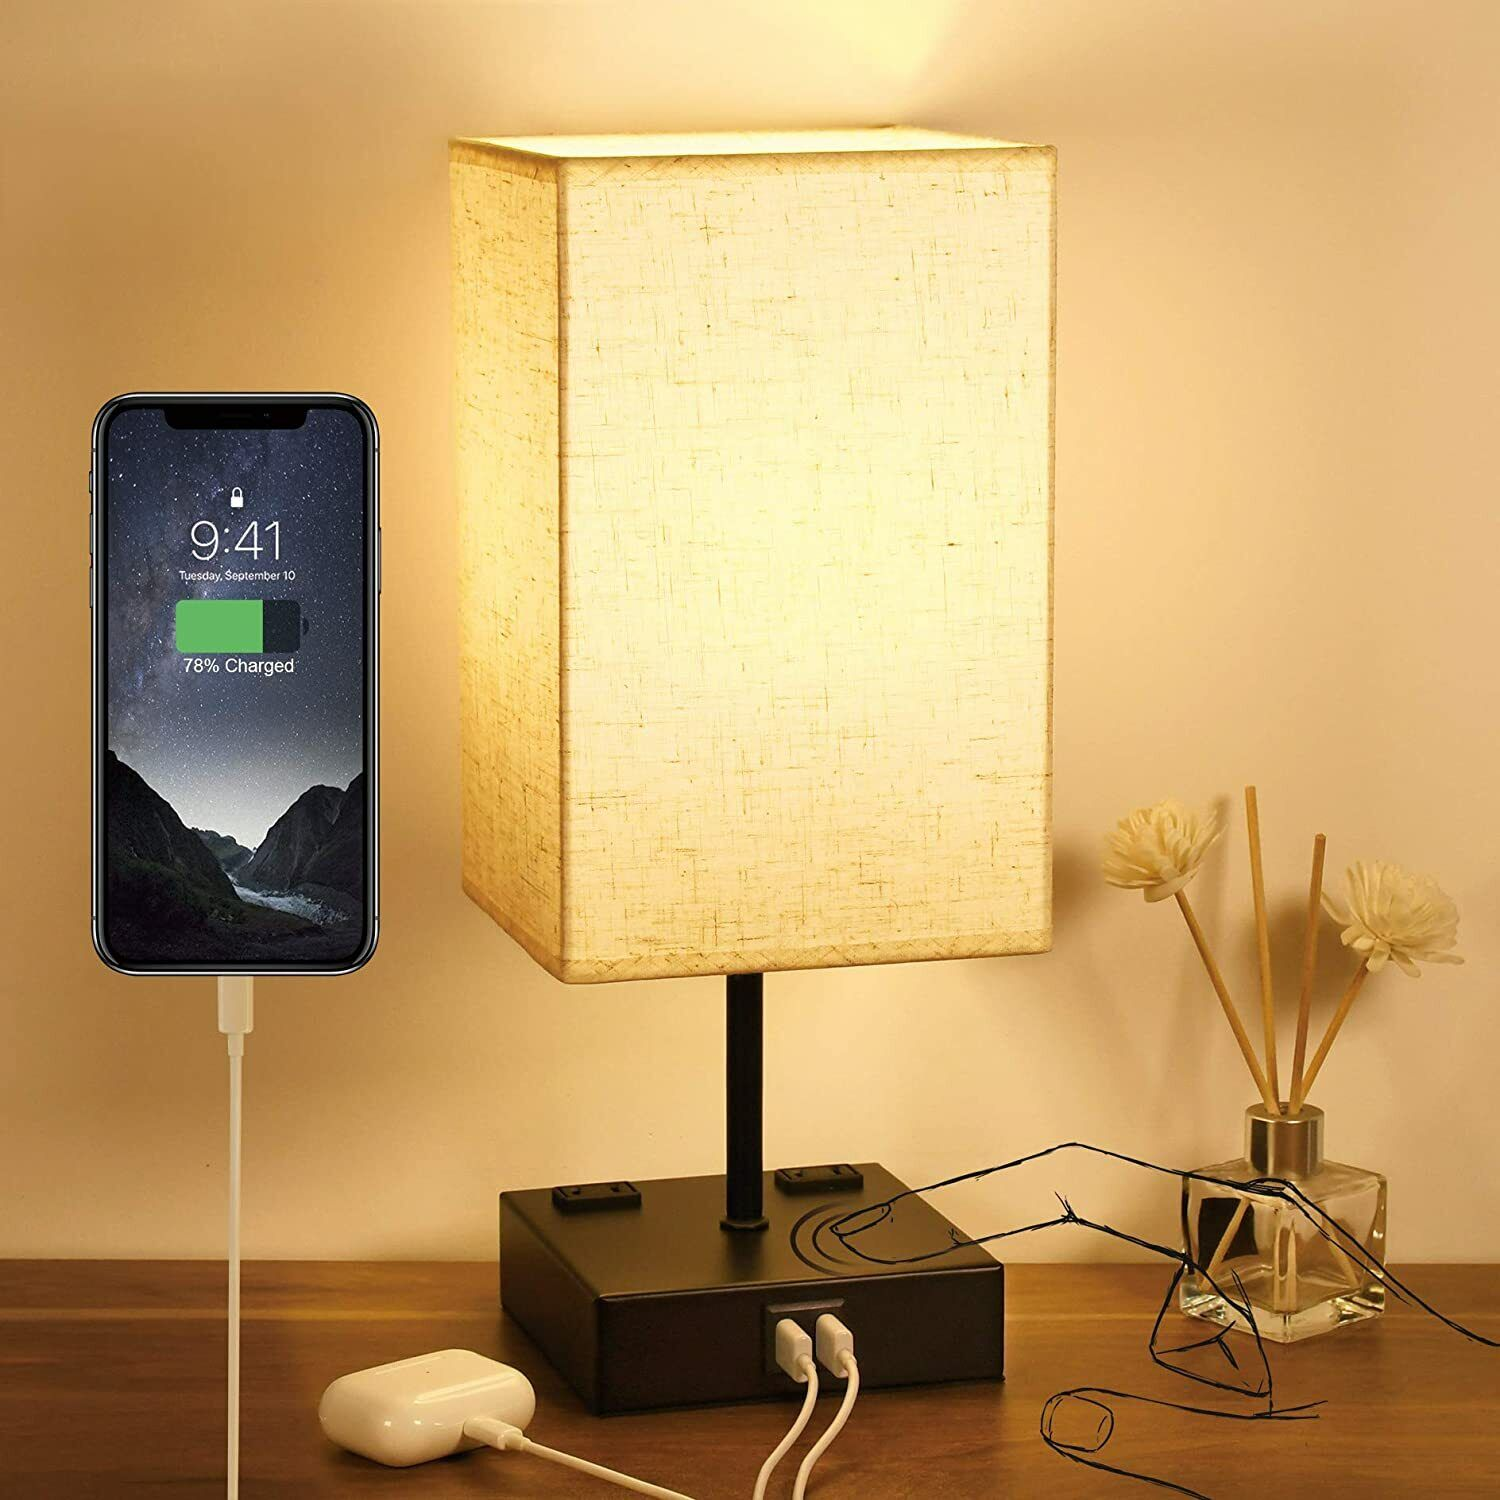 3-Way Touch Control Table Lamp Dimmable, Bedside Lamp with 2